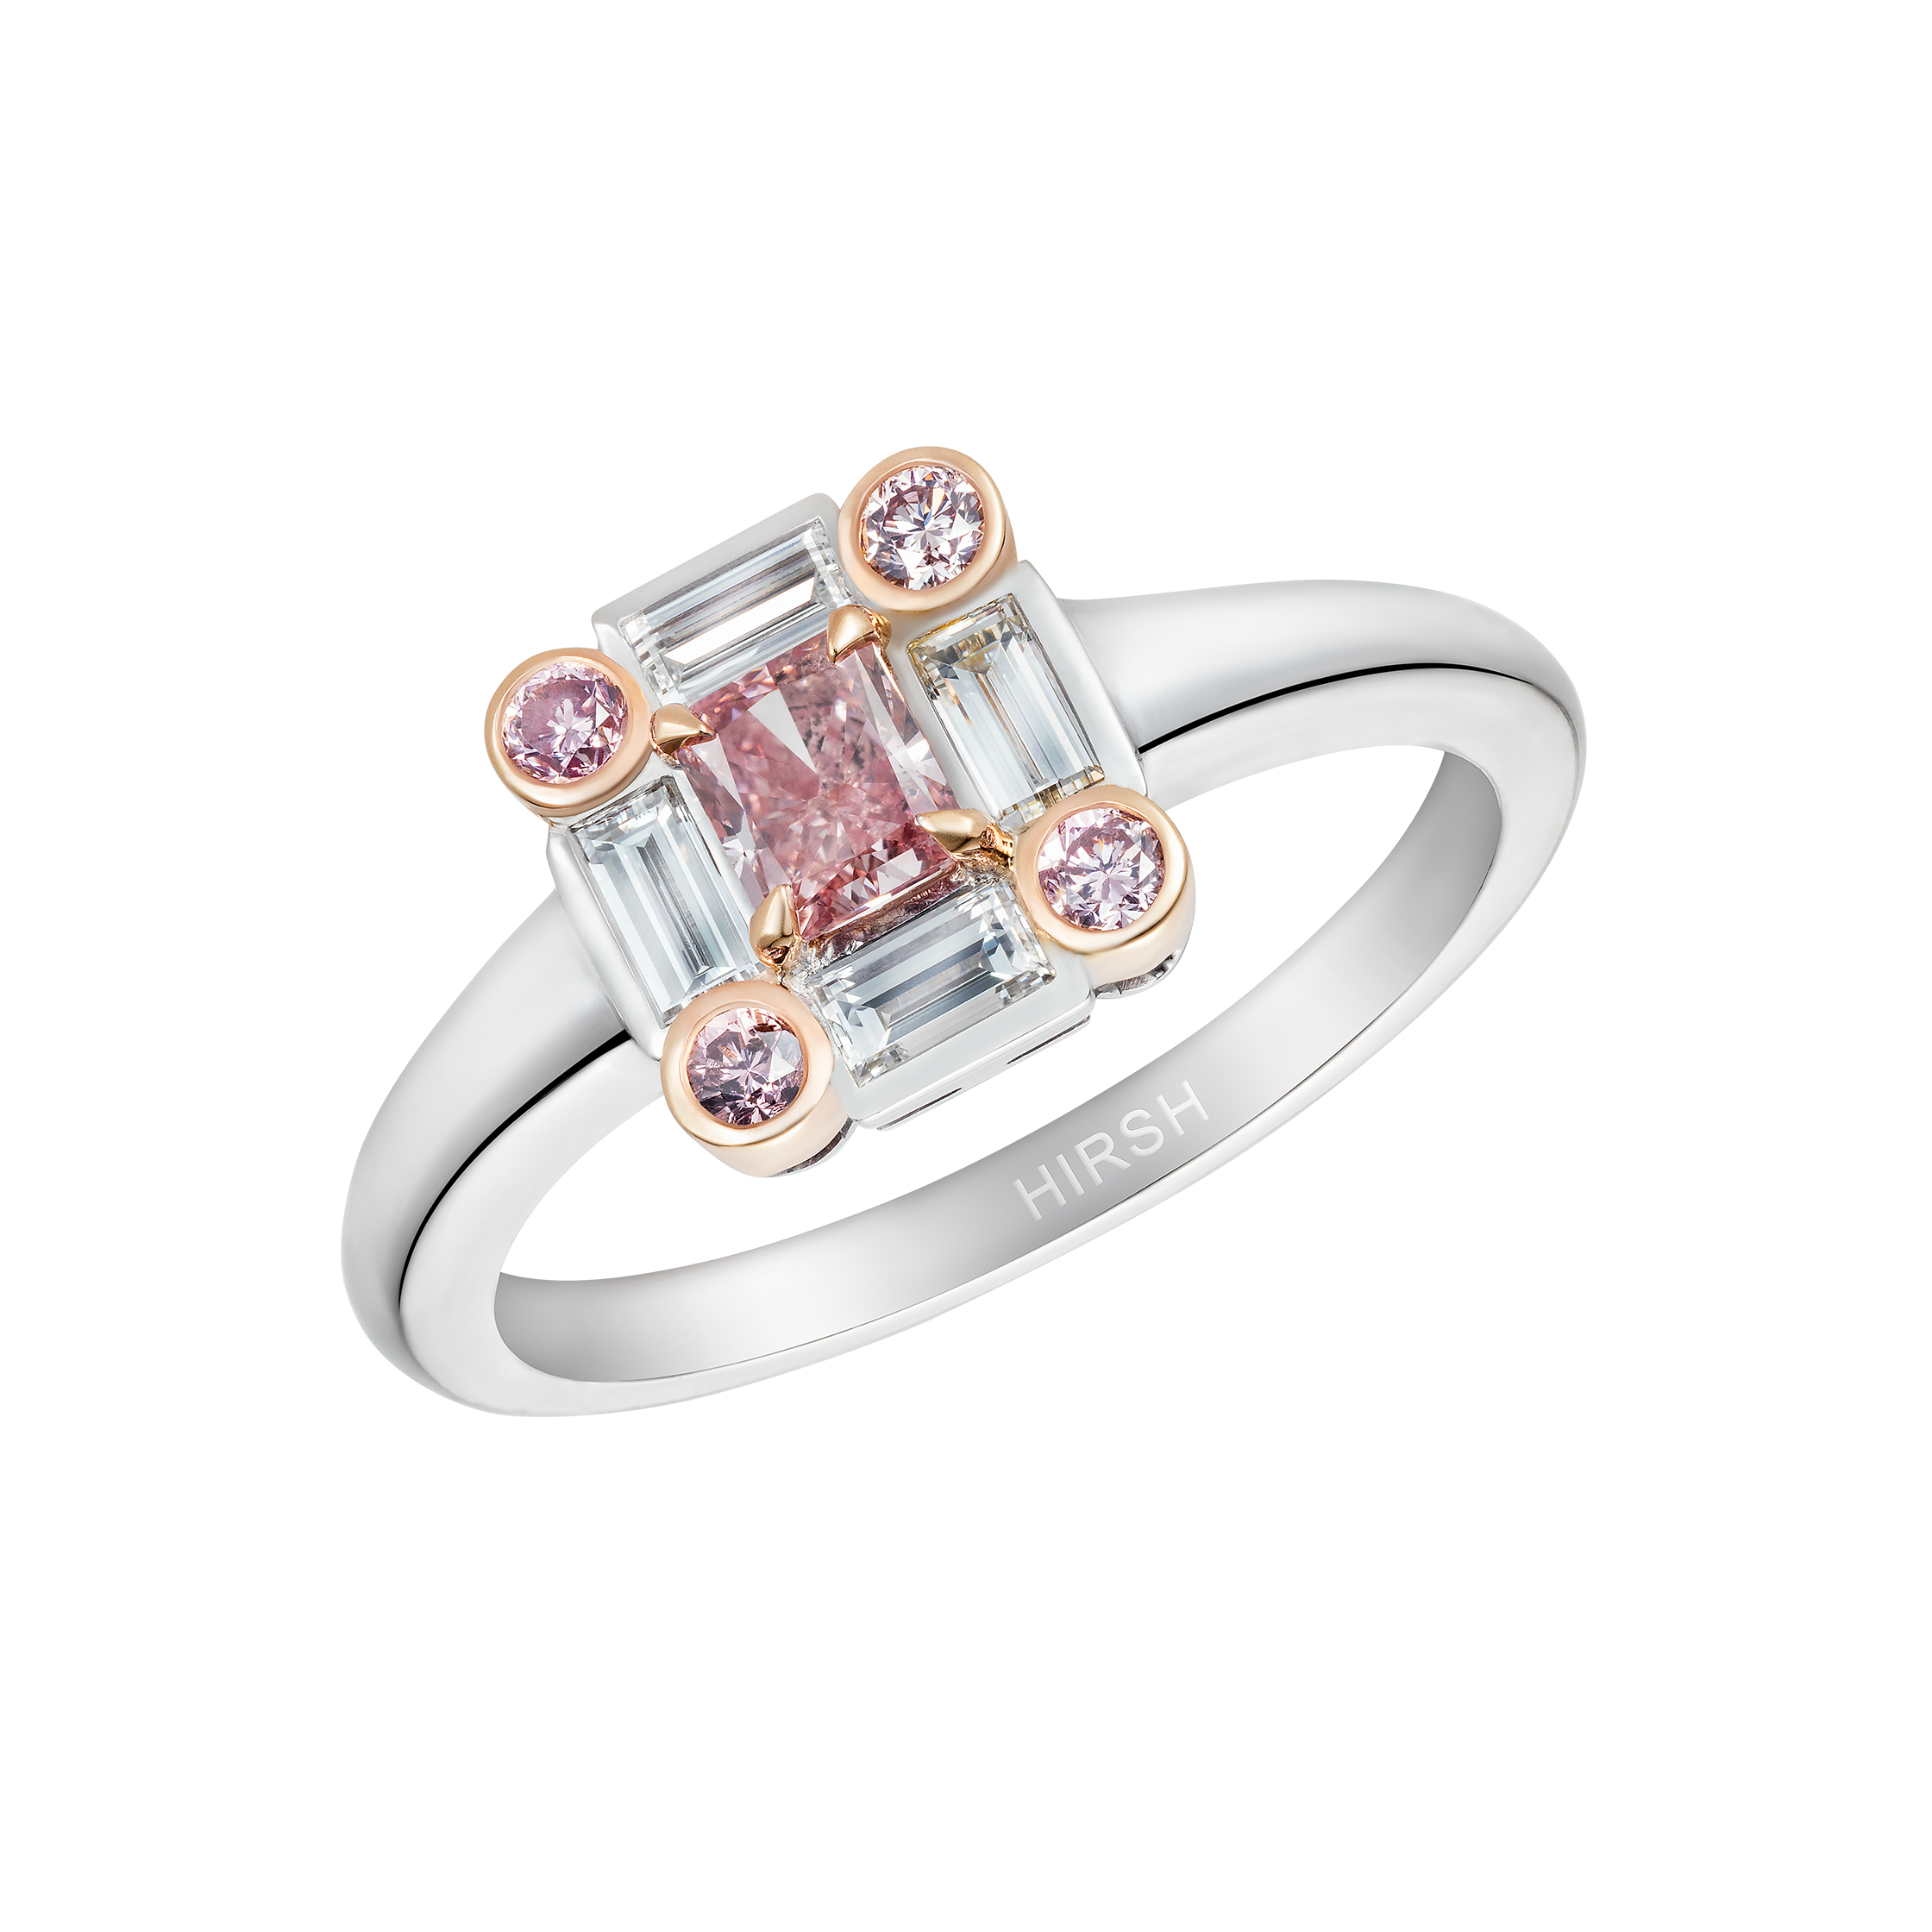 cut ring diamonds shoulders diamond with square engagement pink emerald rings jewellery